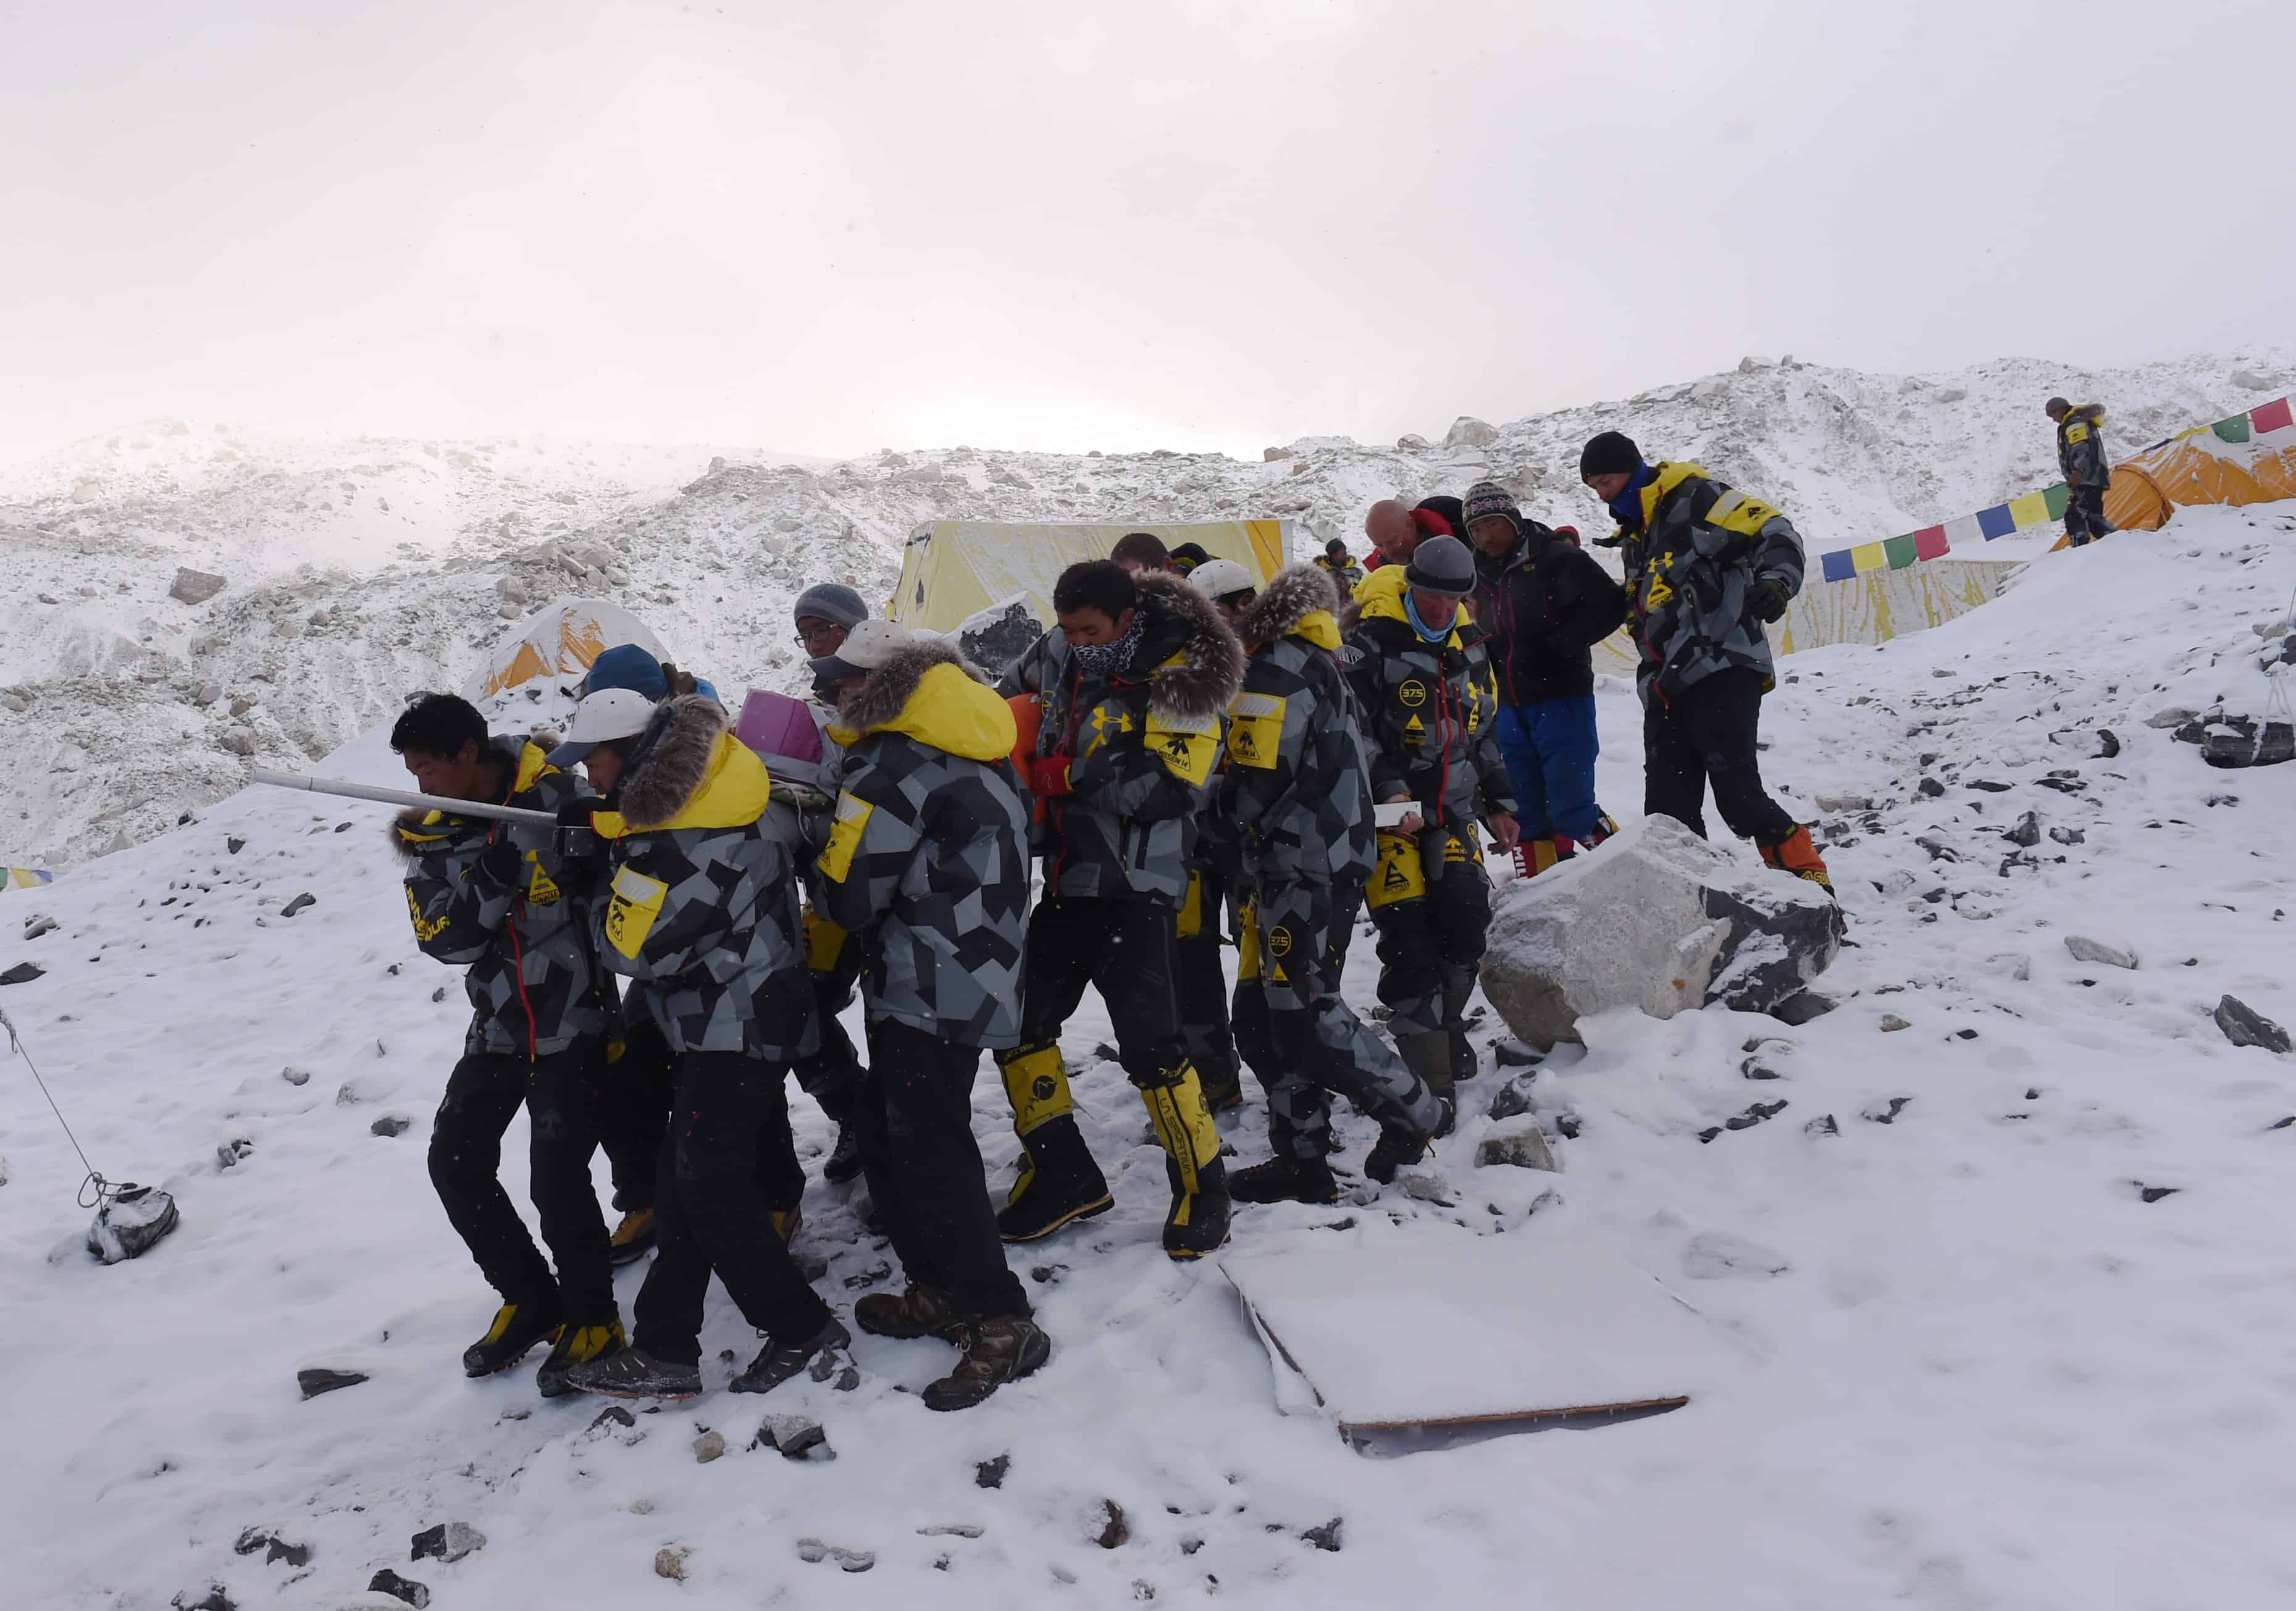 An injured person is carried by rescue members to be airlifted by rescue helicopter at Everest Base Camp on April 26, 2015, a day after an avalanche triggered by an earthquake devastated the camp. Rescuers in Nepal are searching frantically for survivors of a huge quake on April 25, that killed nearly 2,000, digging through rubble in the devastated capital Kathmandu and airlifting victims of an avalanche at Everest base Camp.